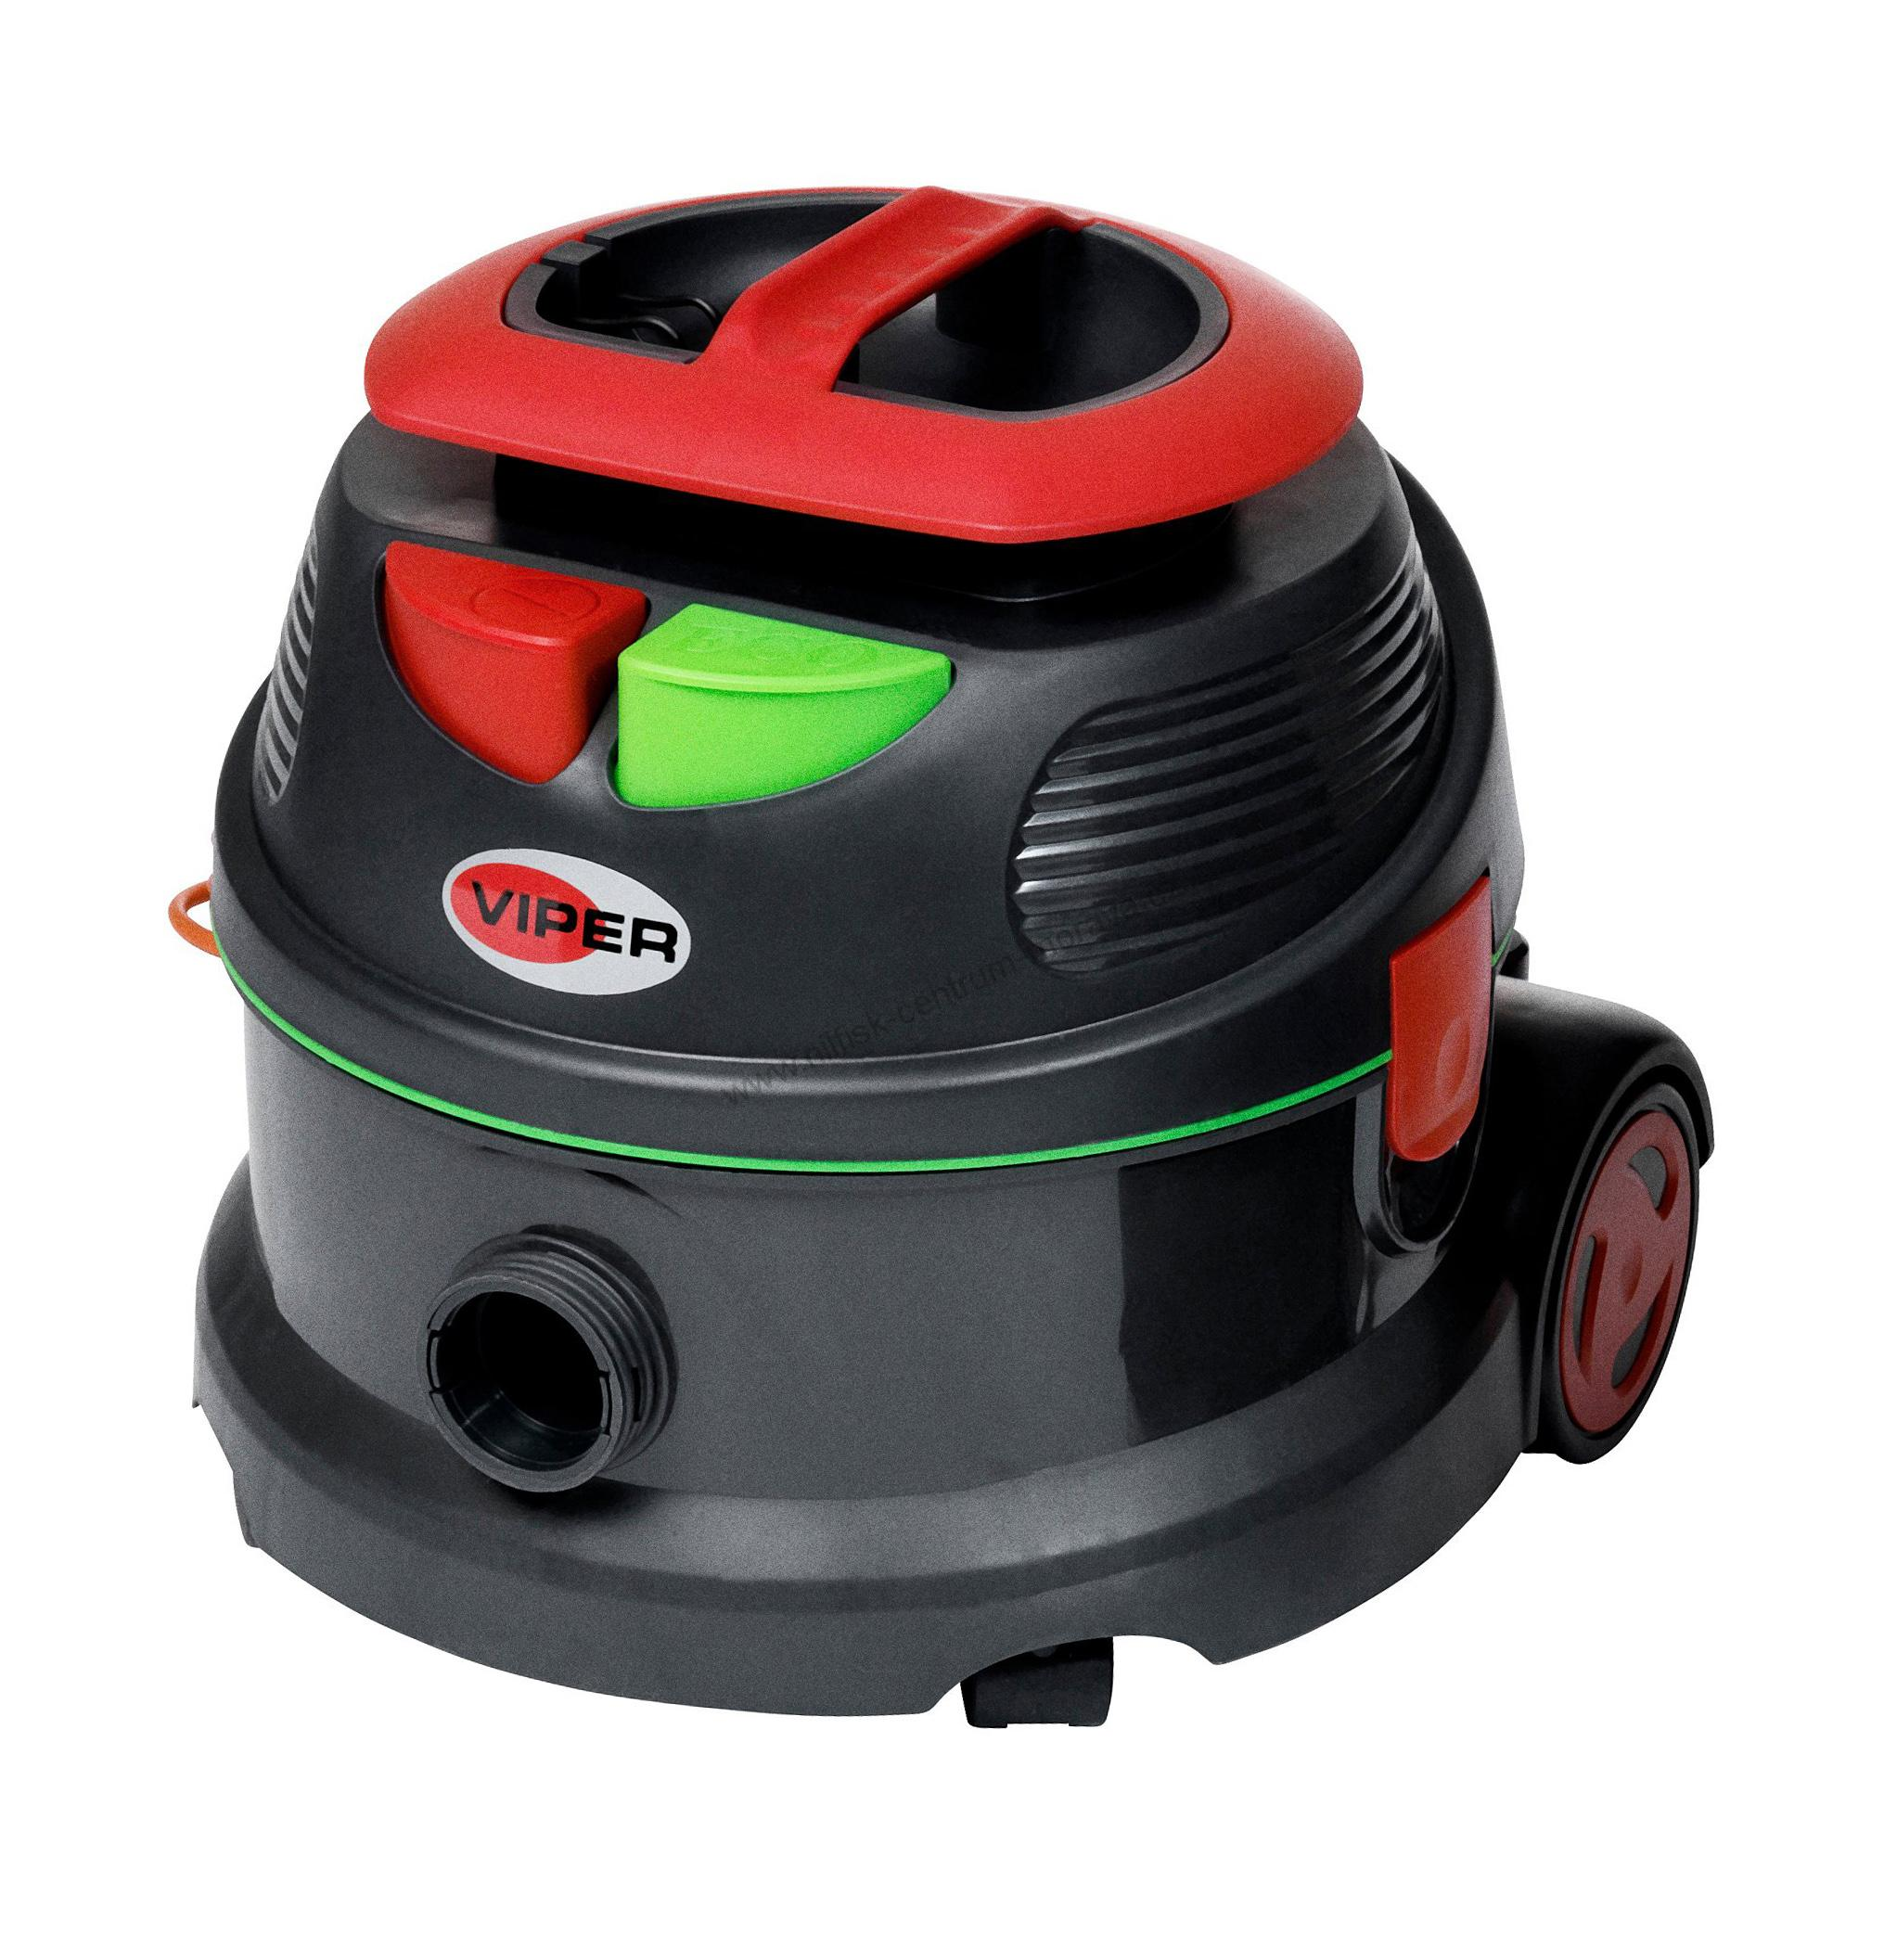 Viper-DSU-12-12L-Vacuum-Cleaner-1200w--black-